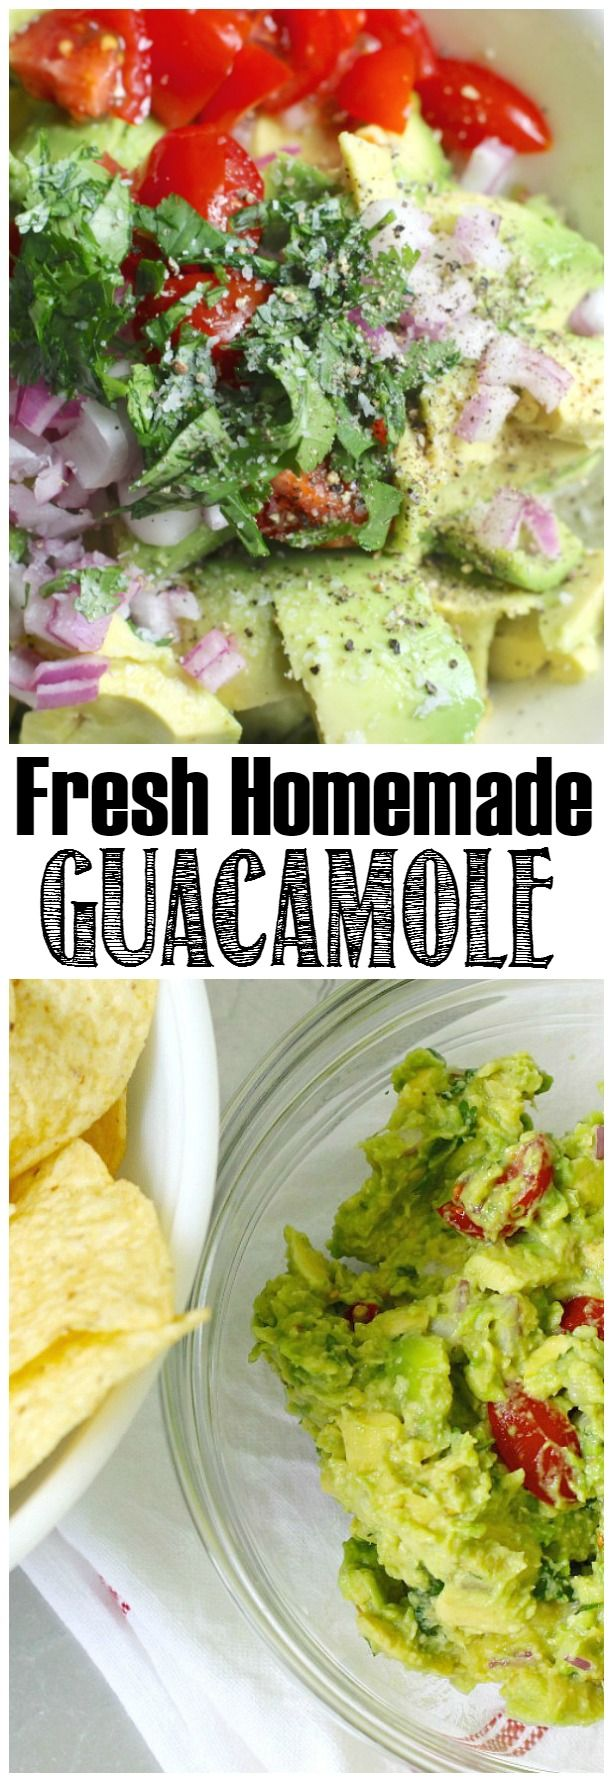 Fresh, homemade guacamole recipe. Yummy!!